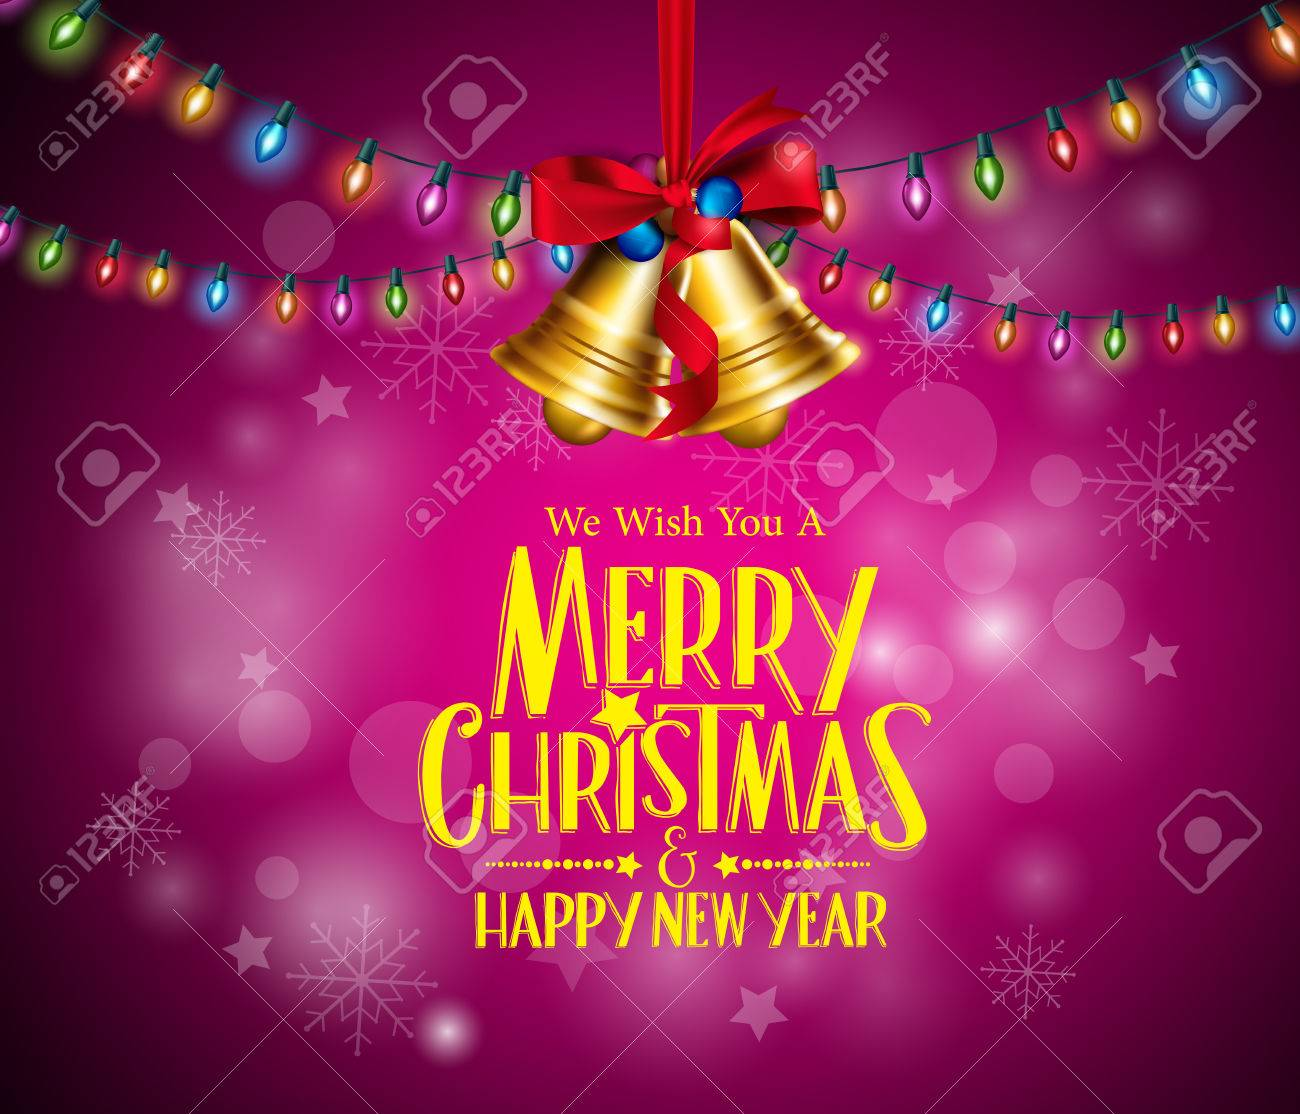 Merry christmas greetings with realistic 3d bells and colorful merry christmas greetings with realistic 3d bells and colorful christmas lights hanging in dark night background kristyandbryce Image collections